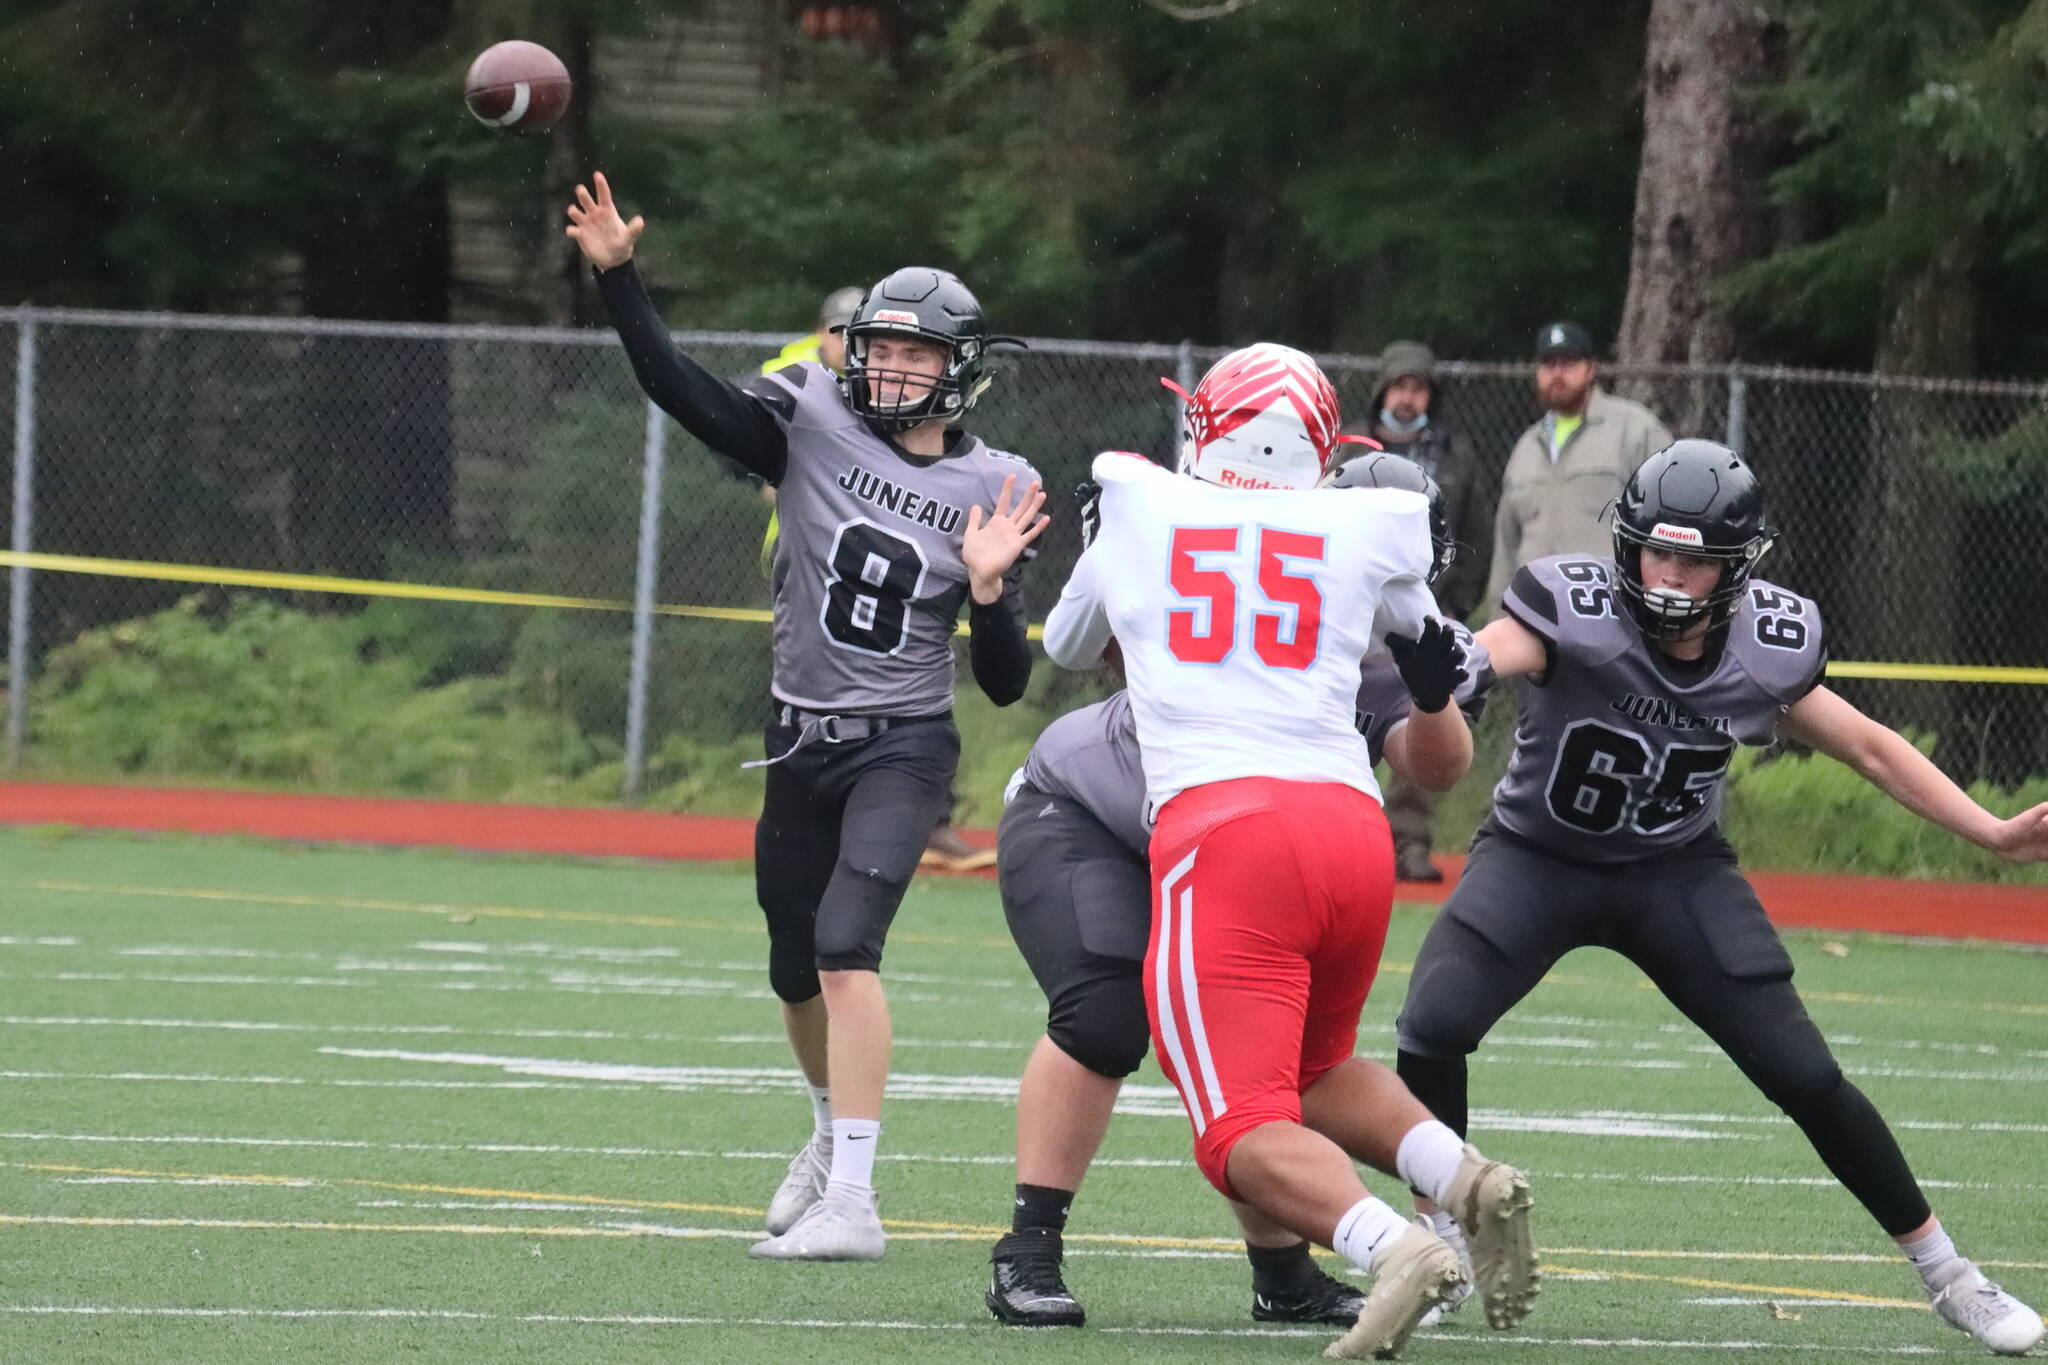 Noah Chambers throws the ball during a game against East Anchorage High School on Sept. 4, 2021. Chambers turned in another solid performance last week as the Huskies beat Service High School in an away game. (Ben Hohenstatt / Juneau Empire File)